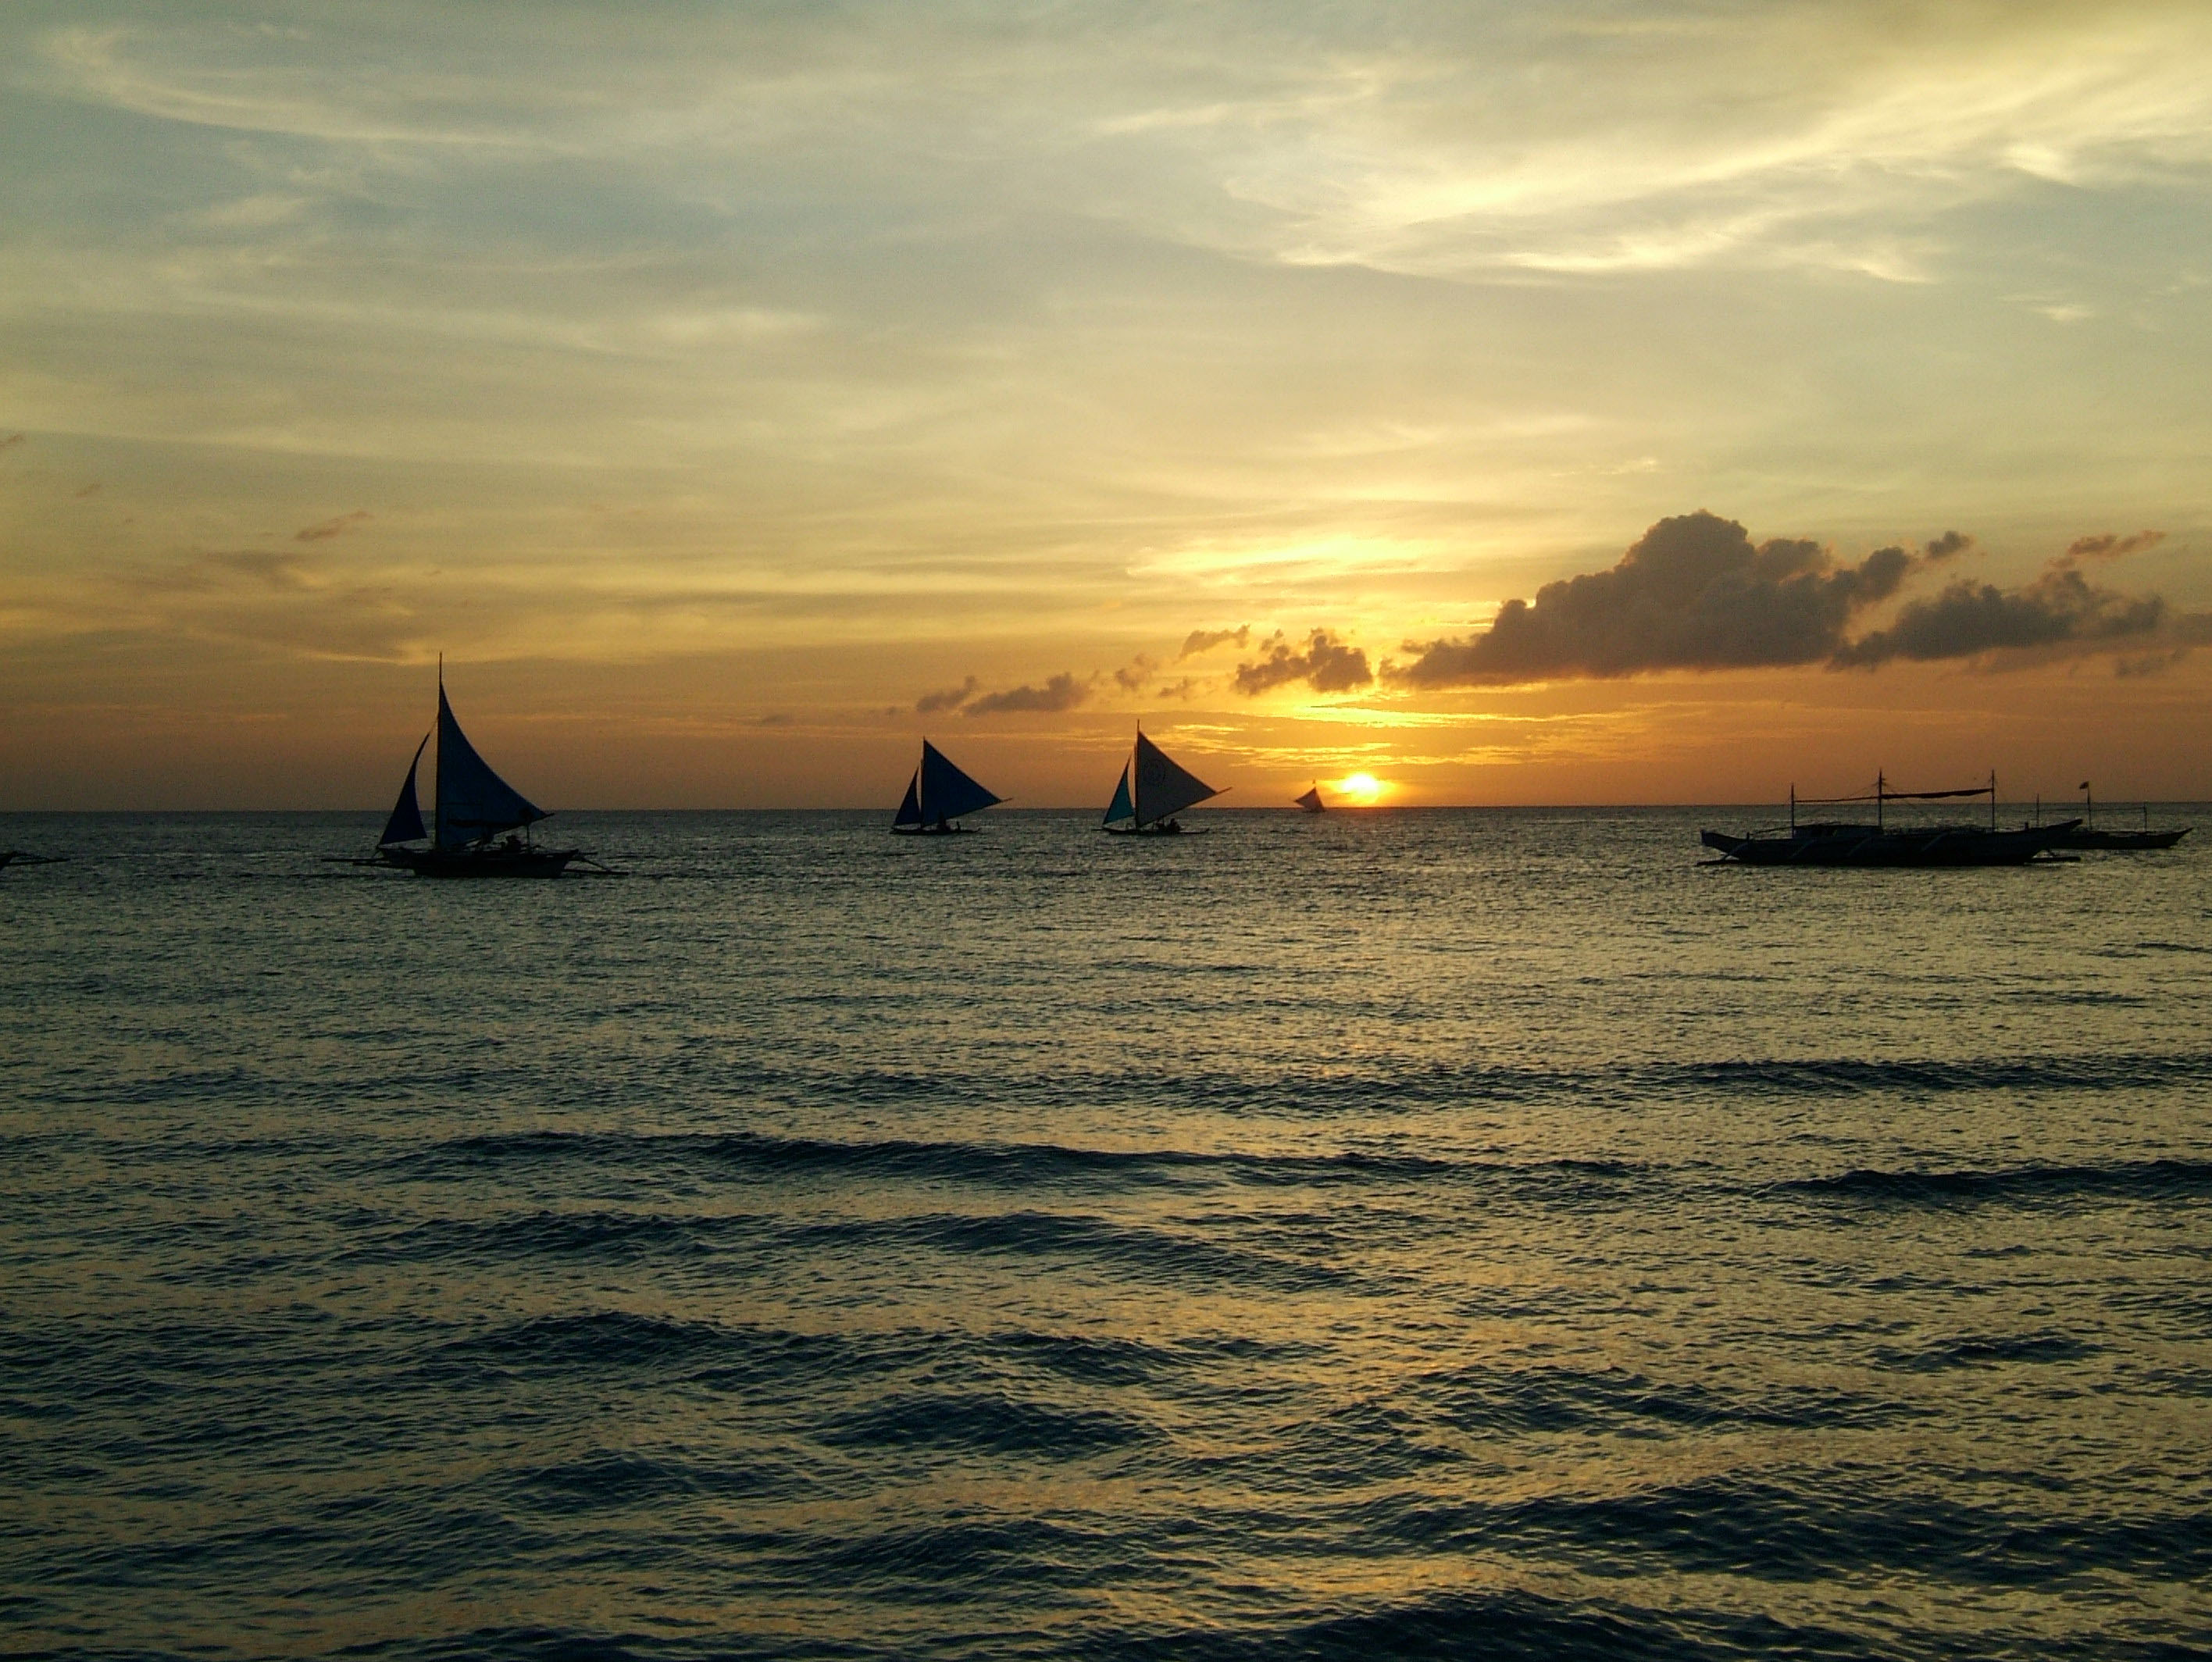 Sunset Philippines Boracay Beach 25